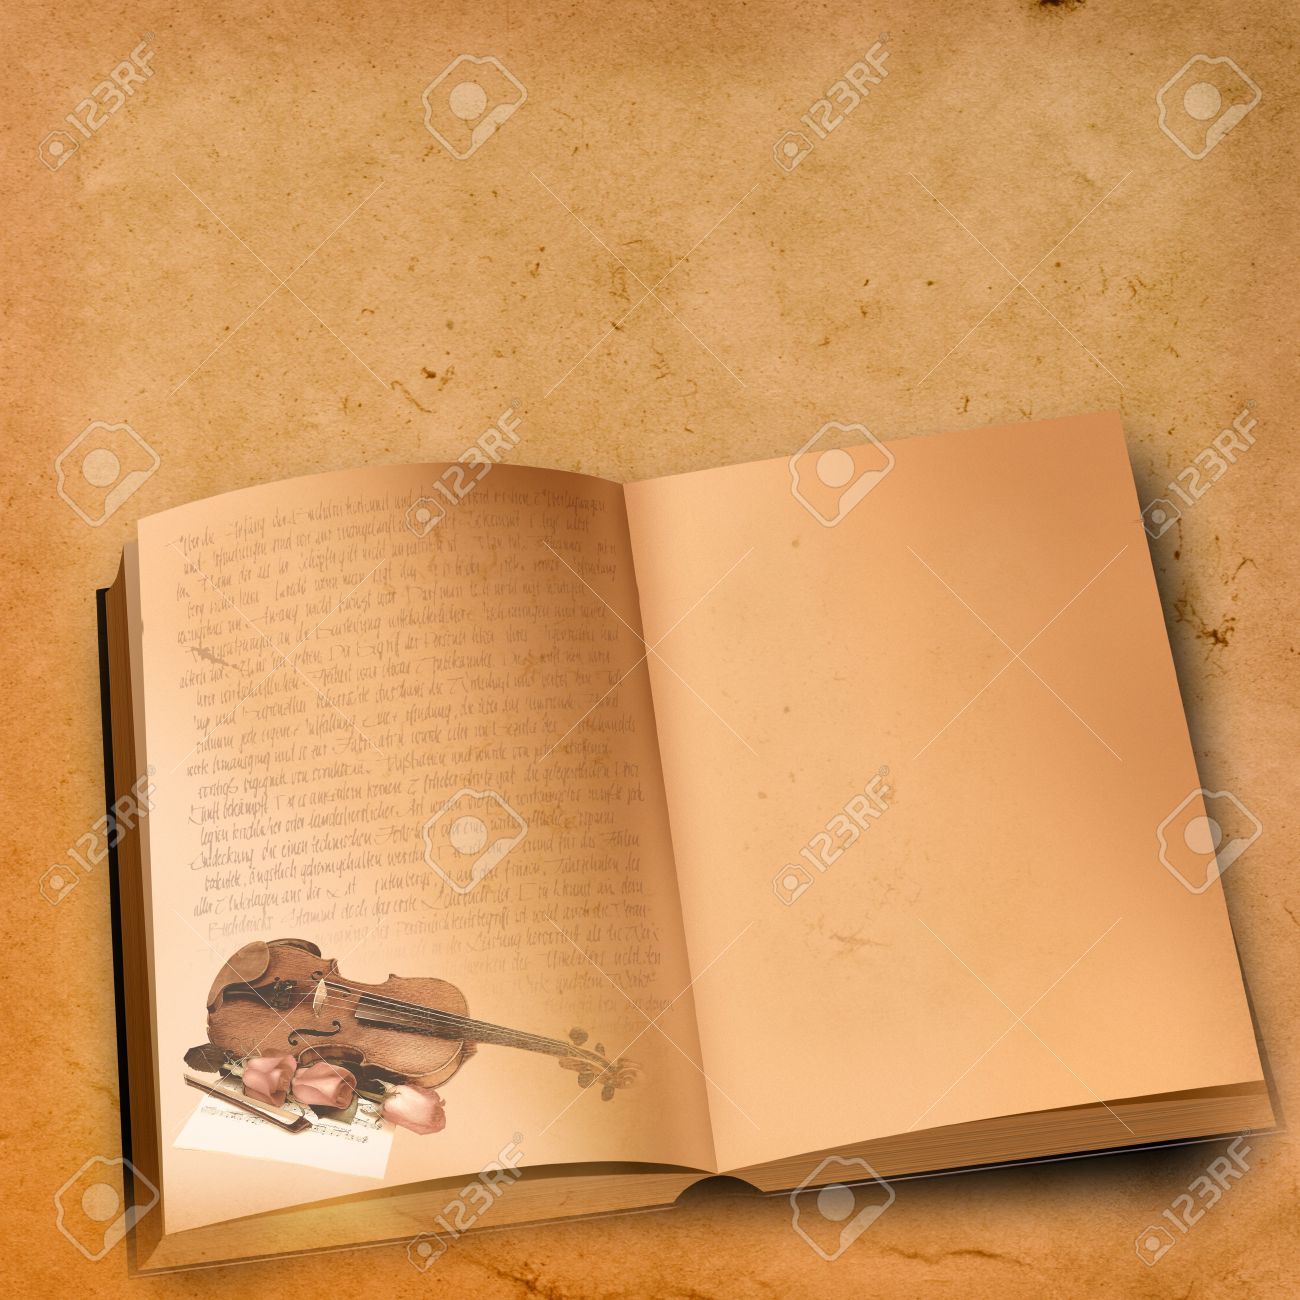 vintage open book with old fashioned text and violin with roses